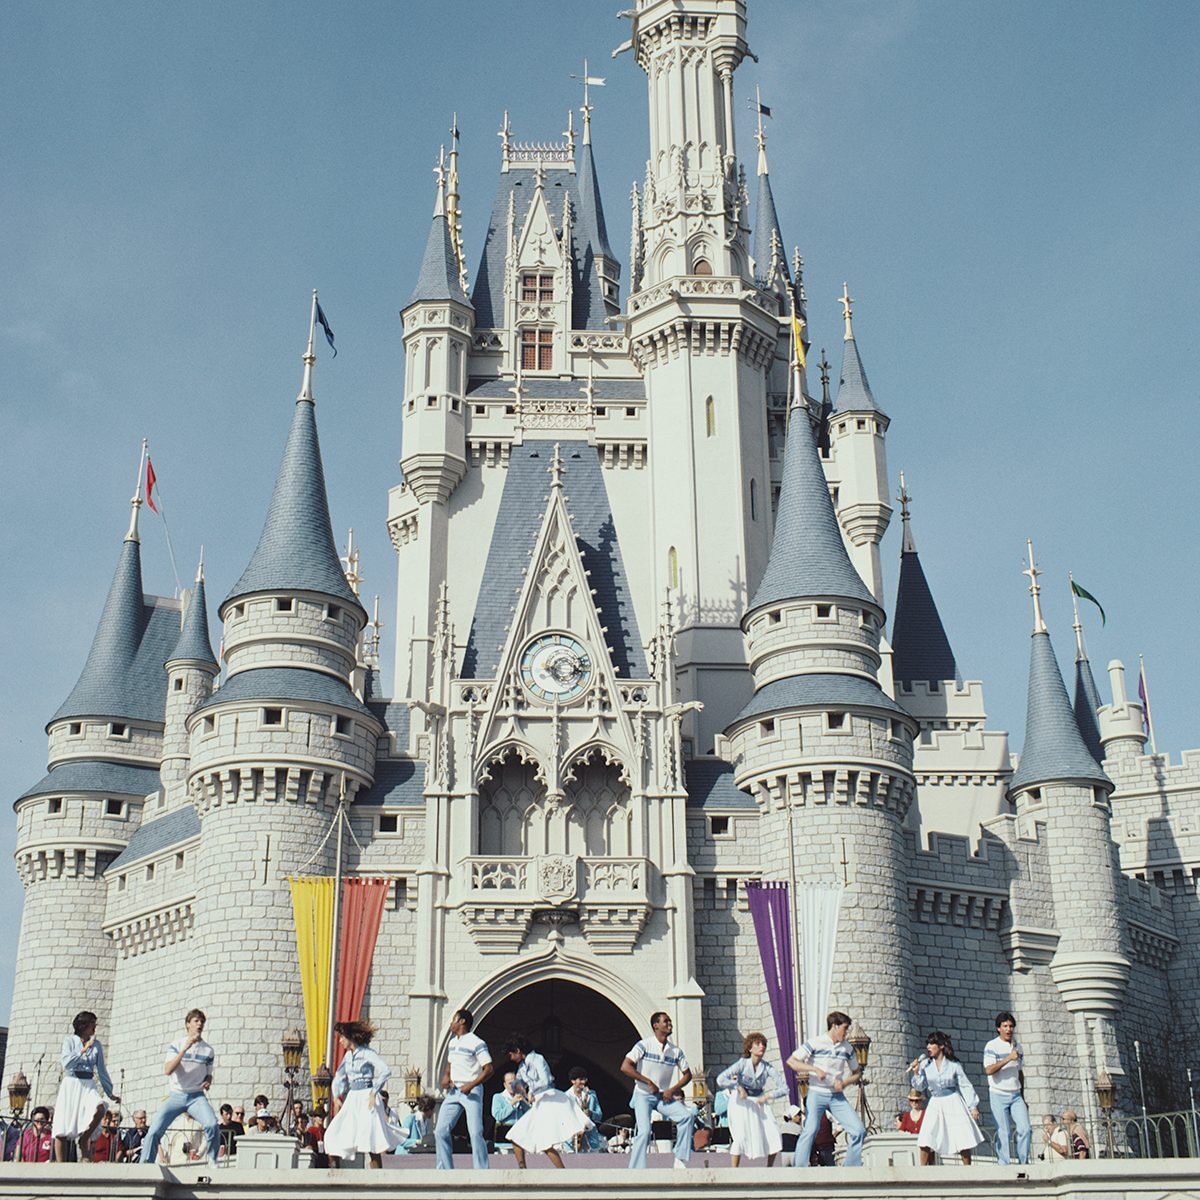 A show outside the Cinderella Castle at Walt Disney World, Florida, 1980. (Photo by Barbara Alper/Getty Images)